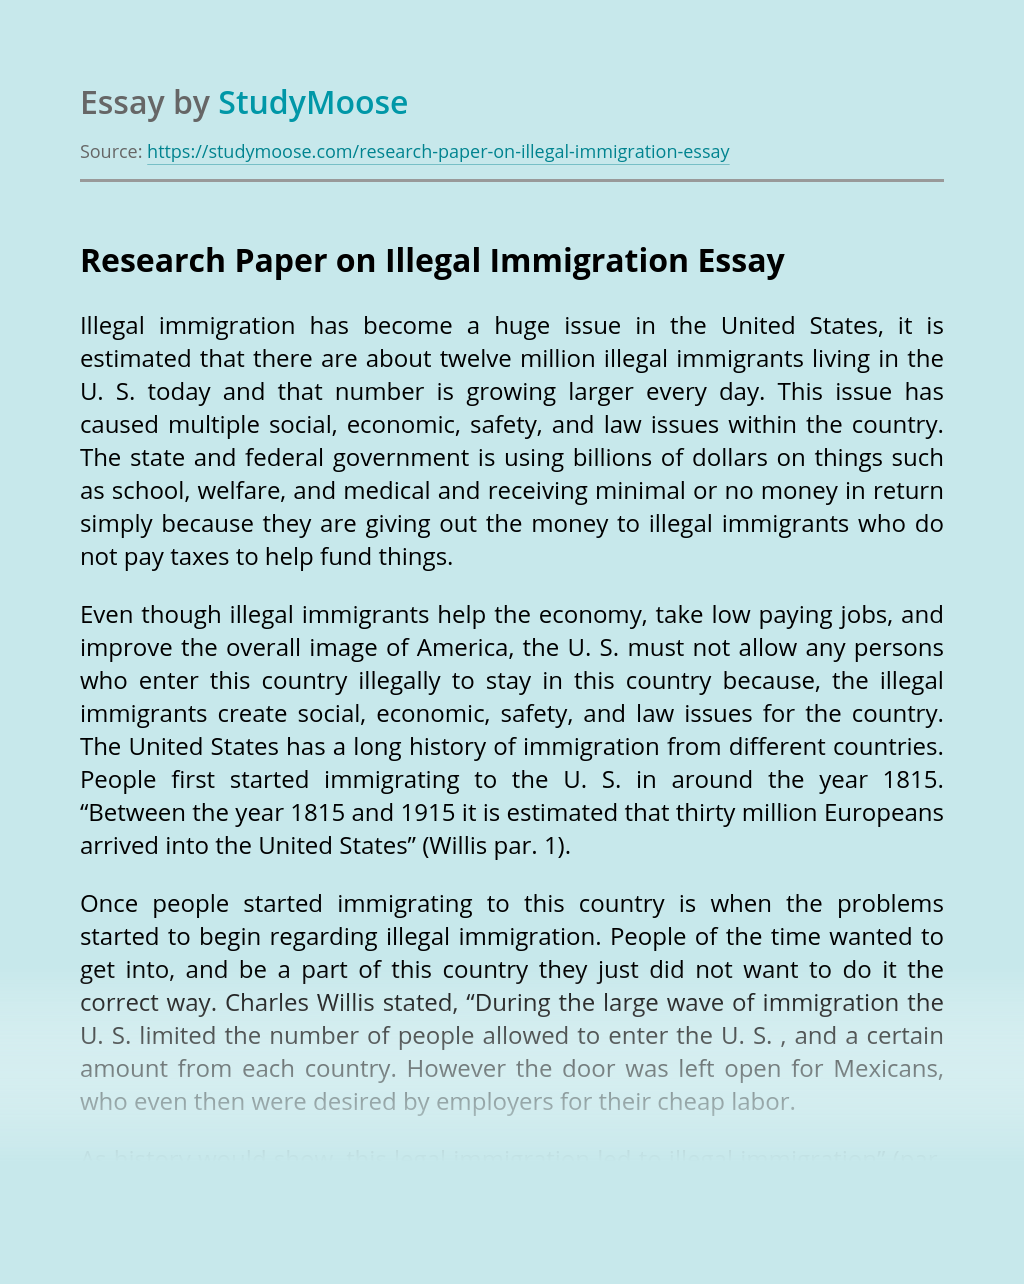 Research Paper on Illegal Immigration